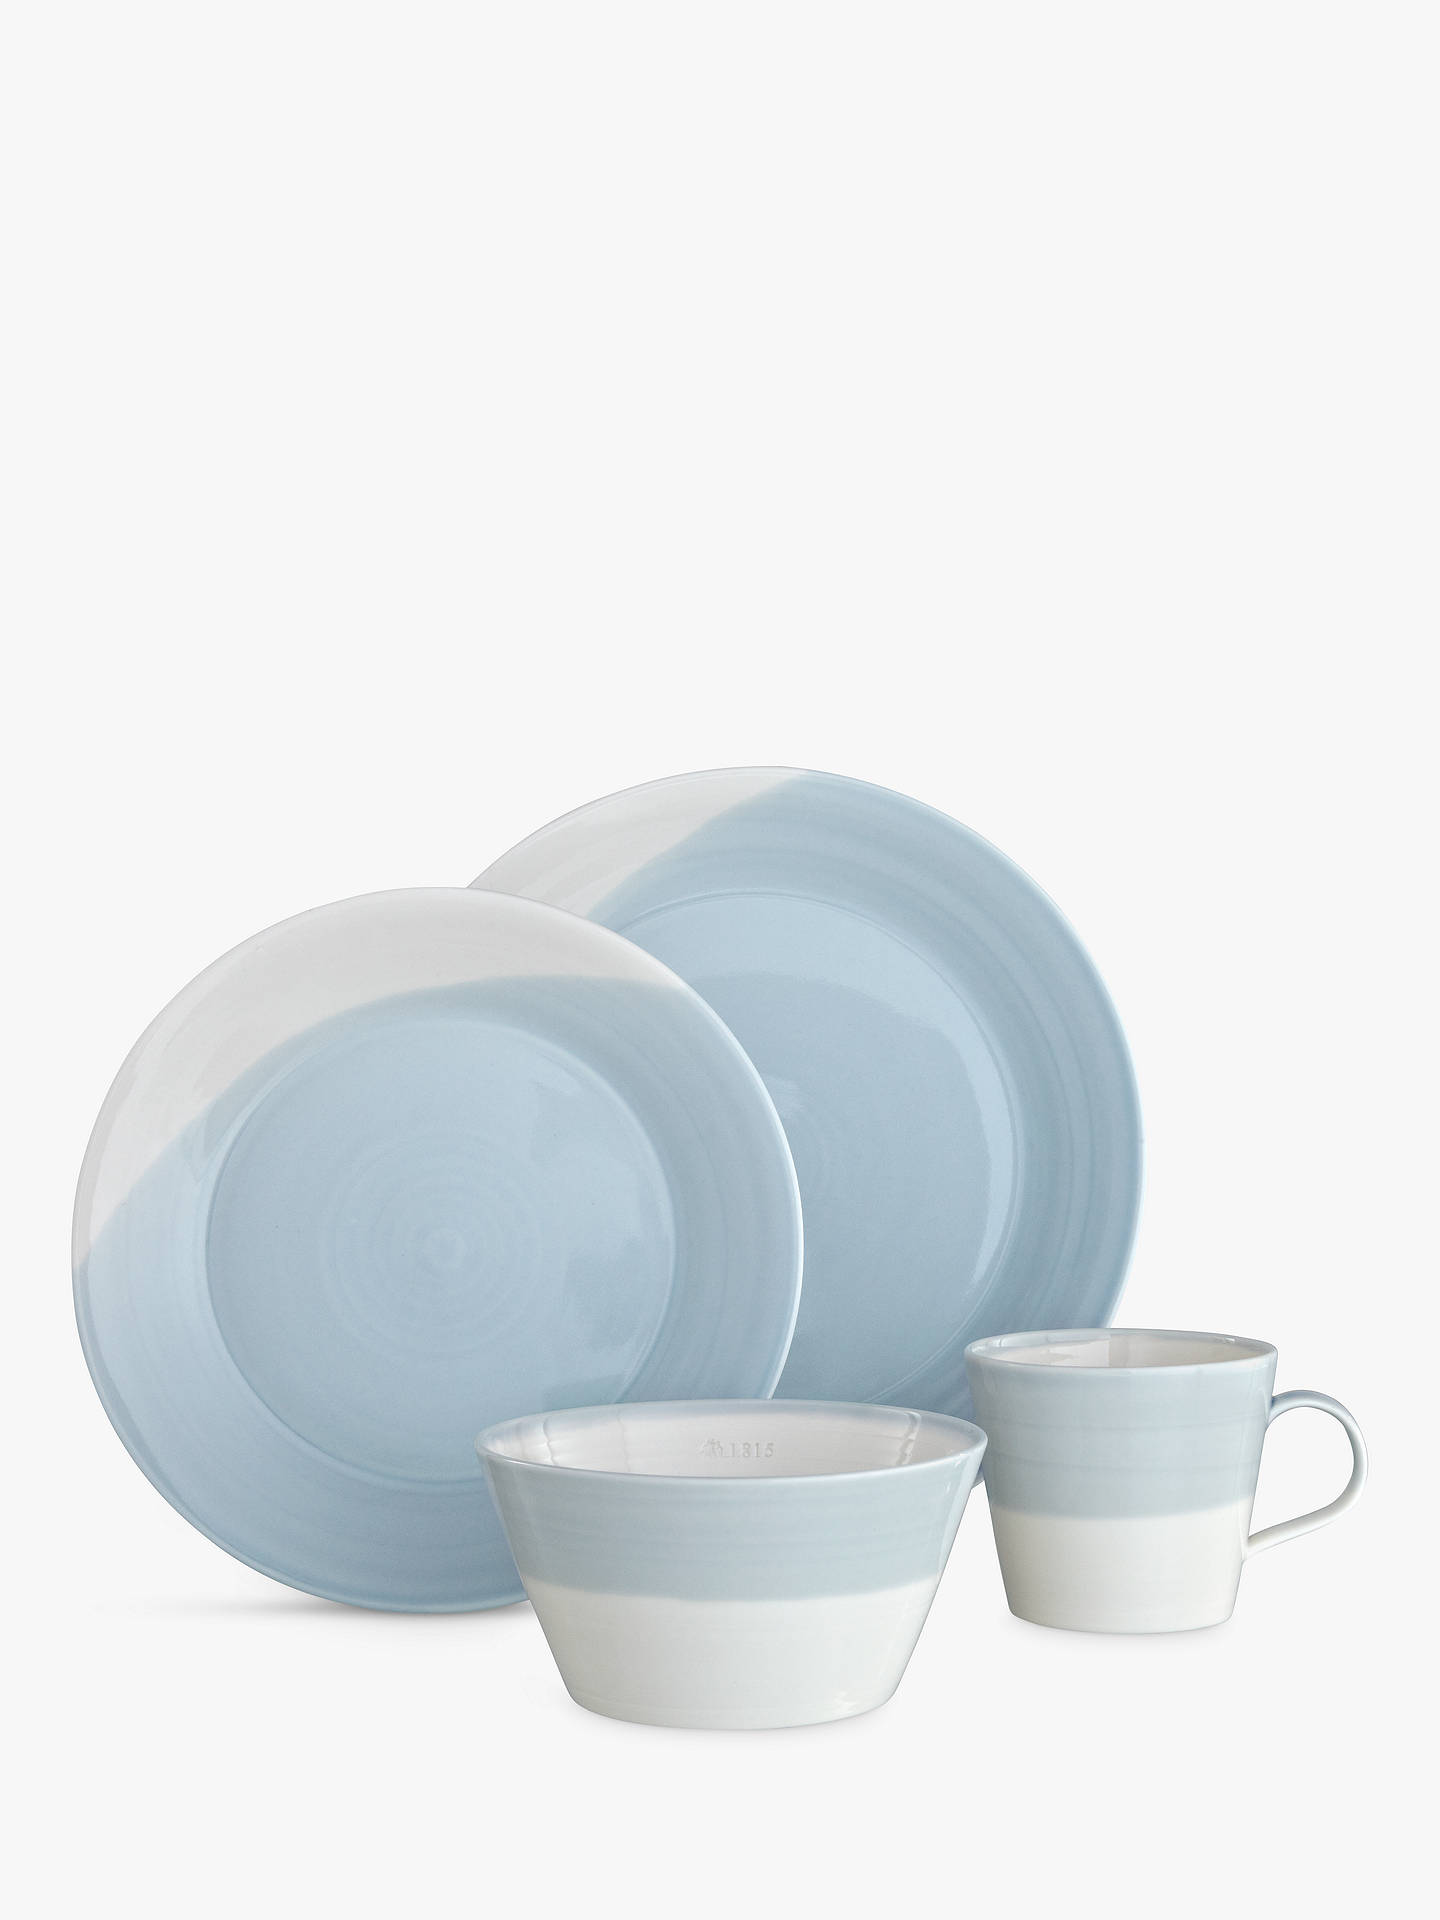 Buy Royal Doulton 1815 Dinnerware Set, White/Blue, 16 Pieces Online at johnlewis.com